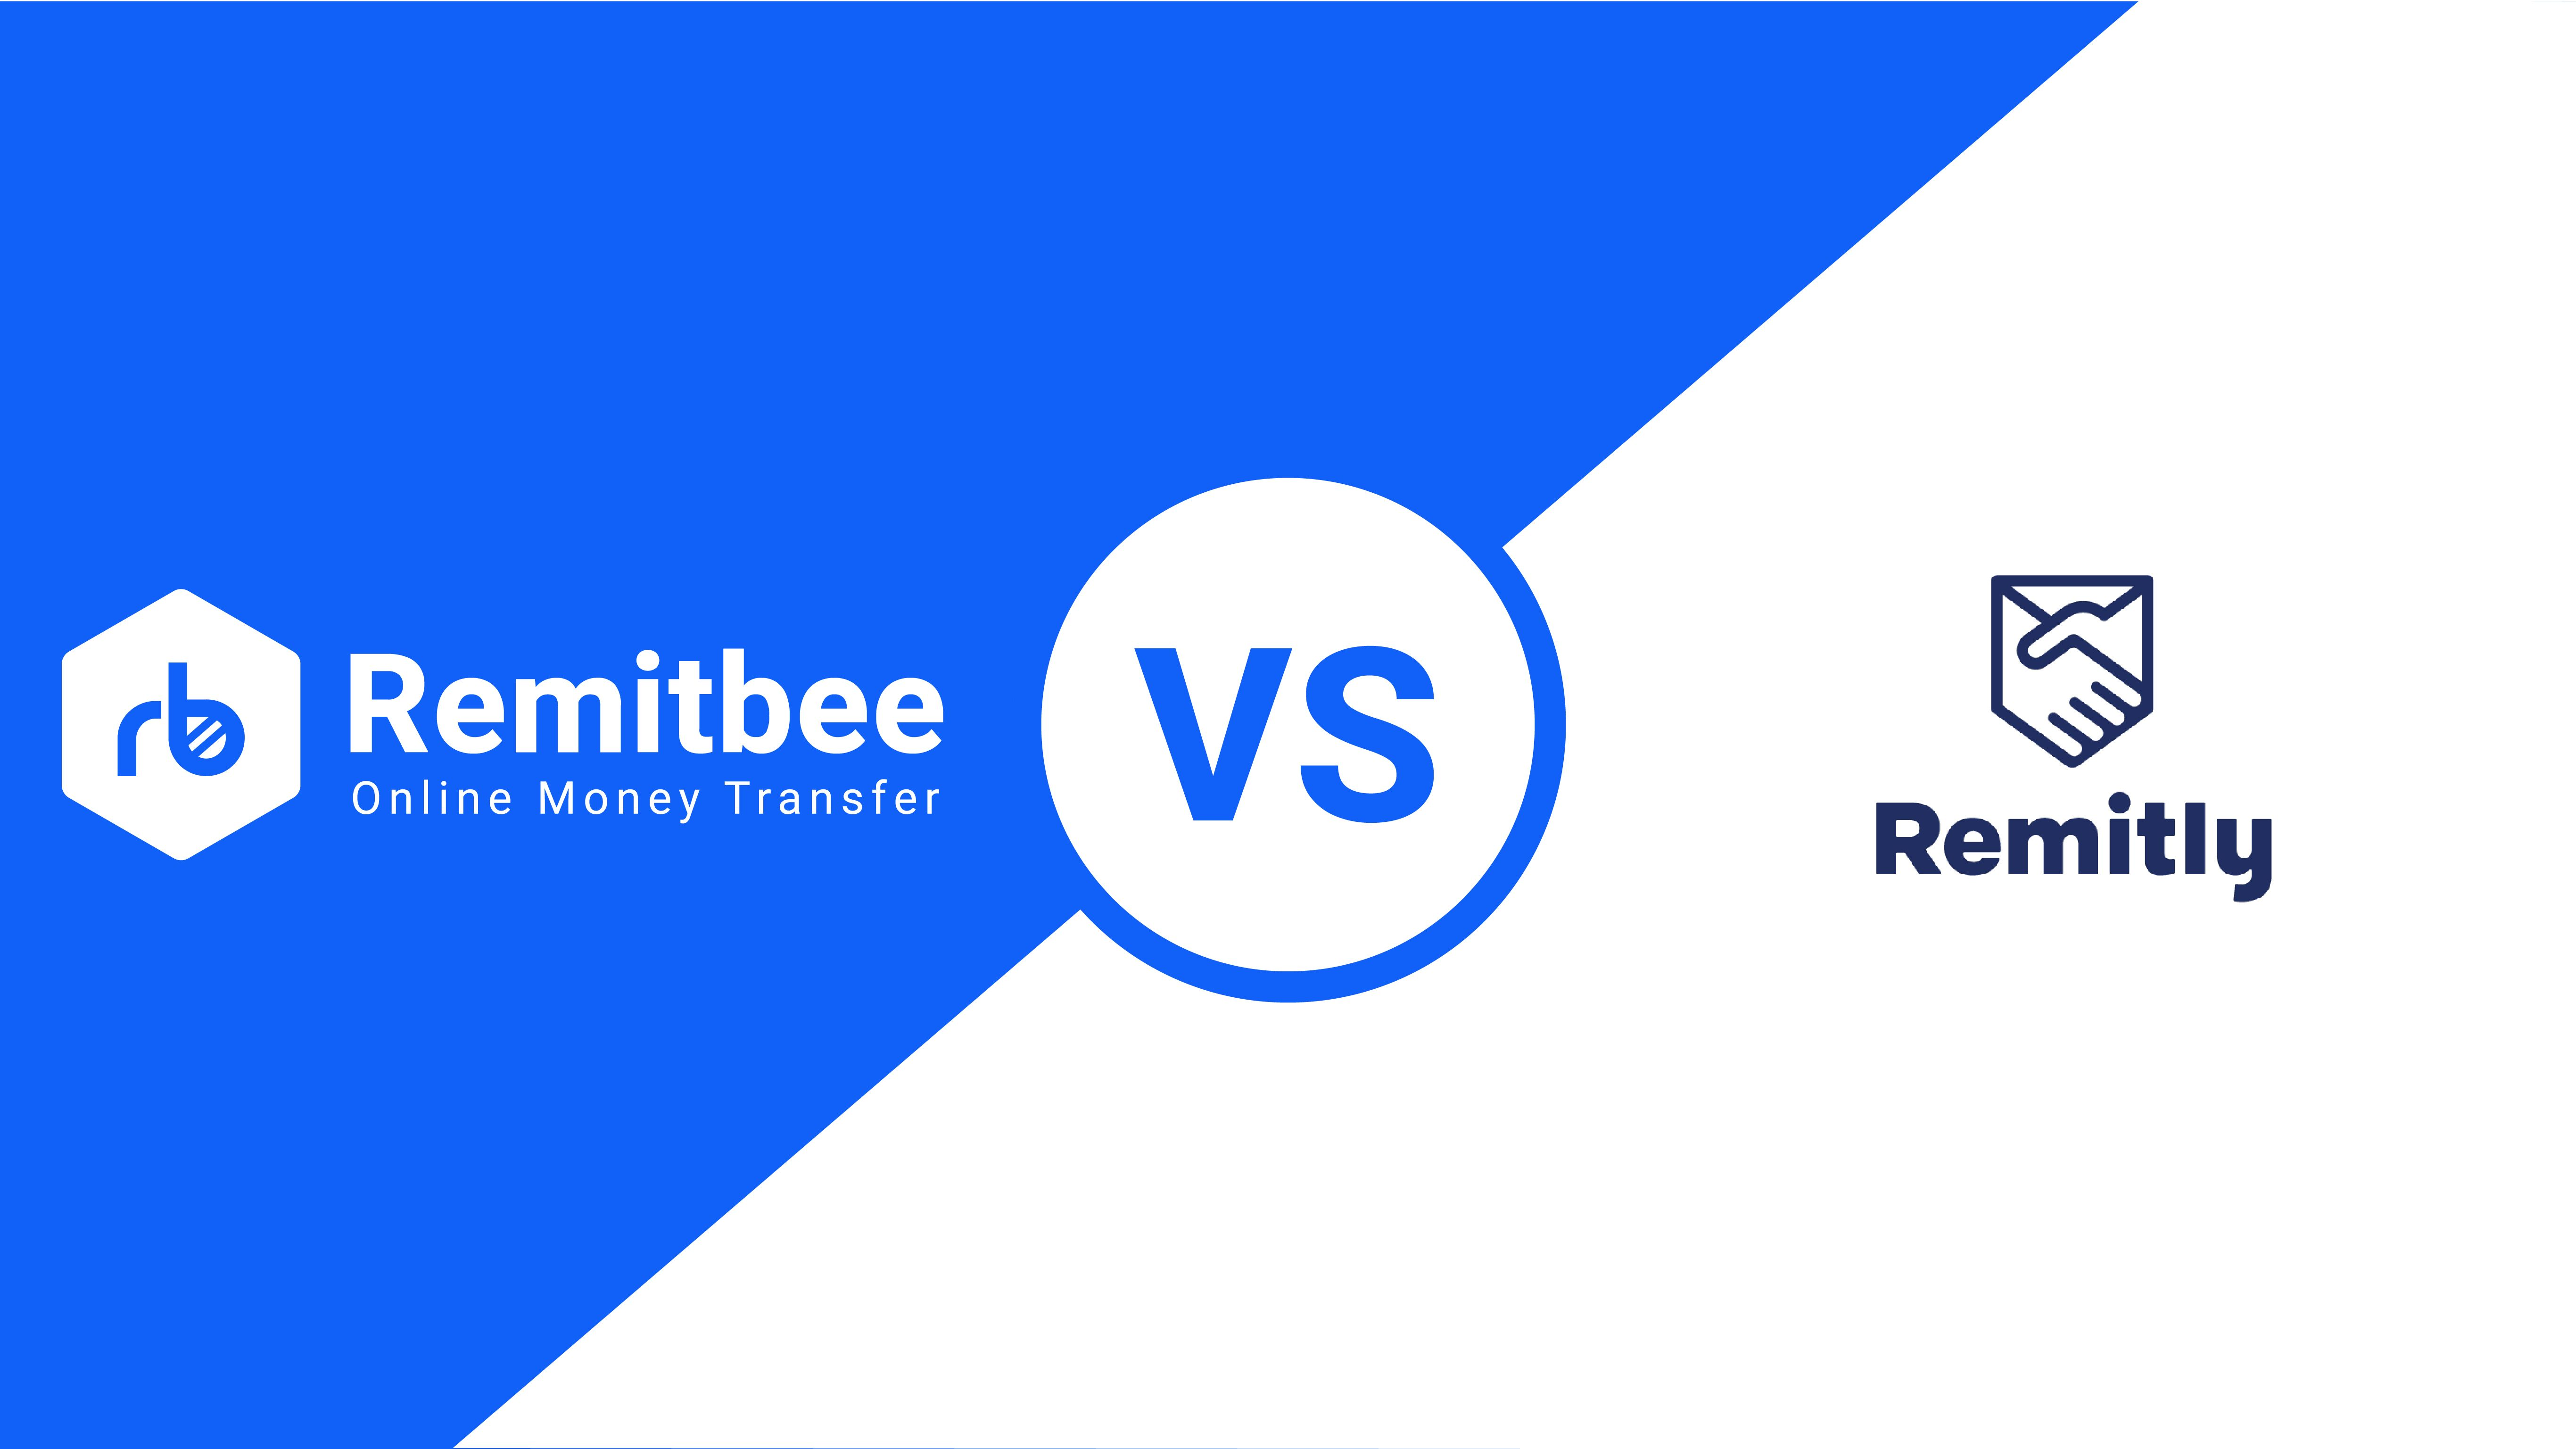 remitbee vs remitly